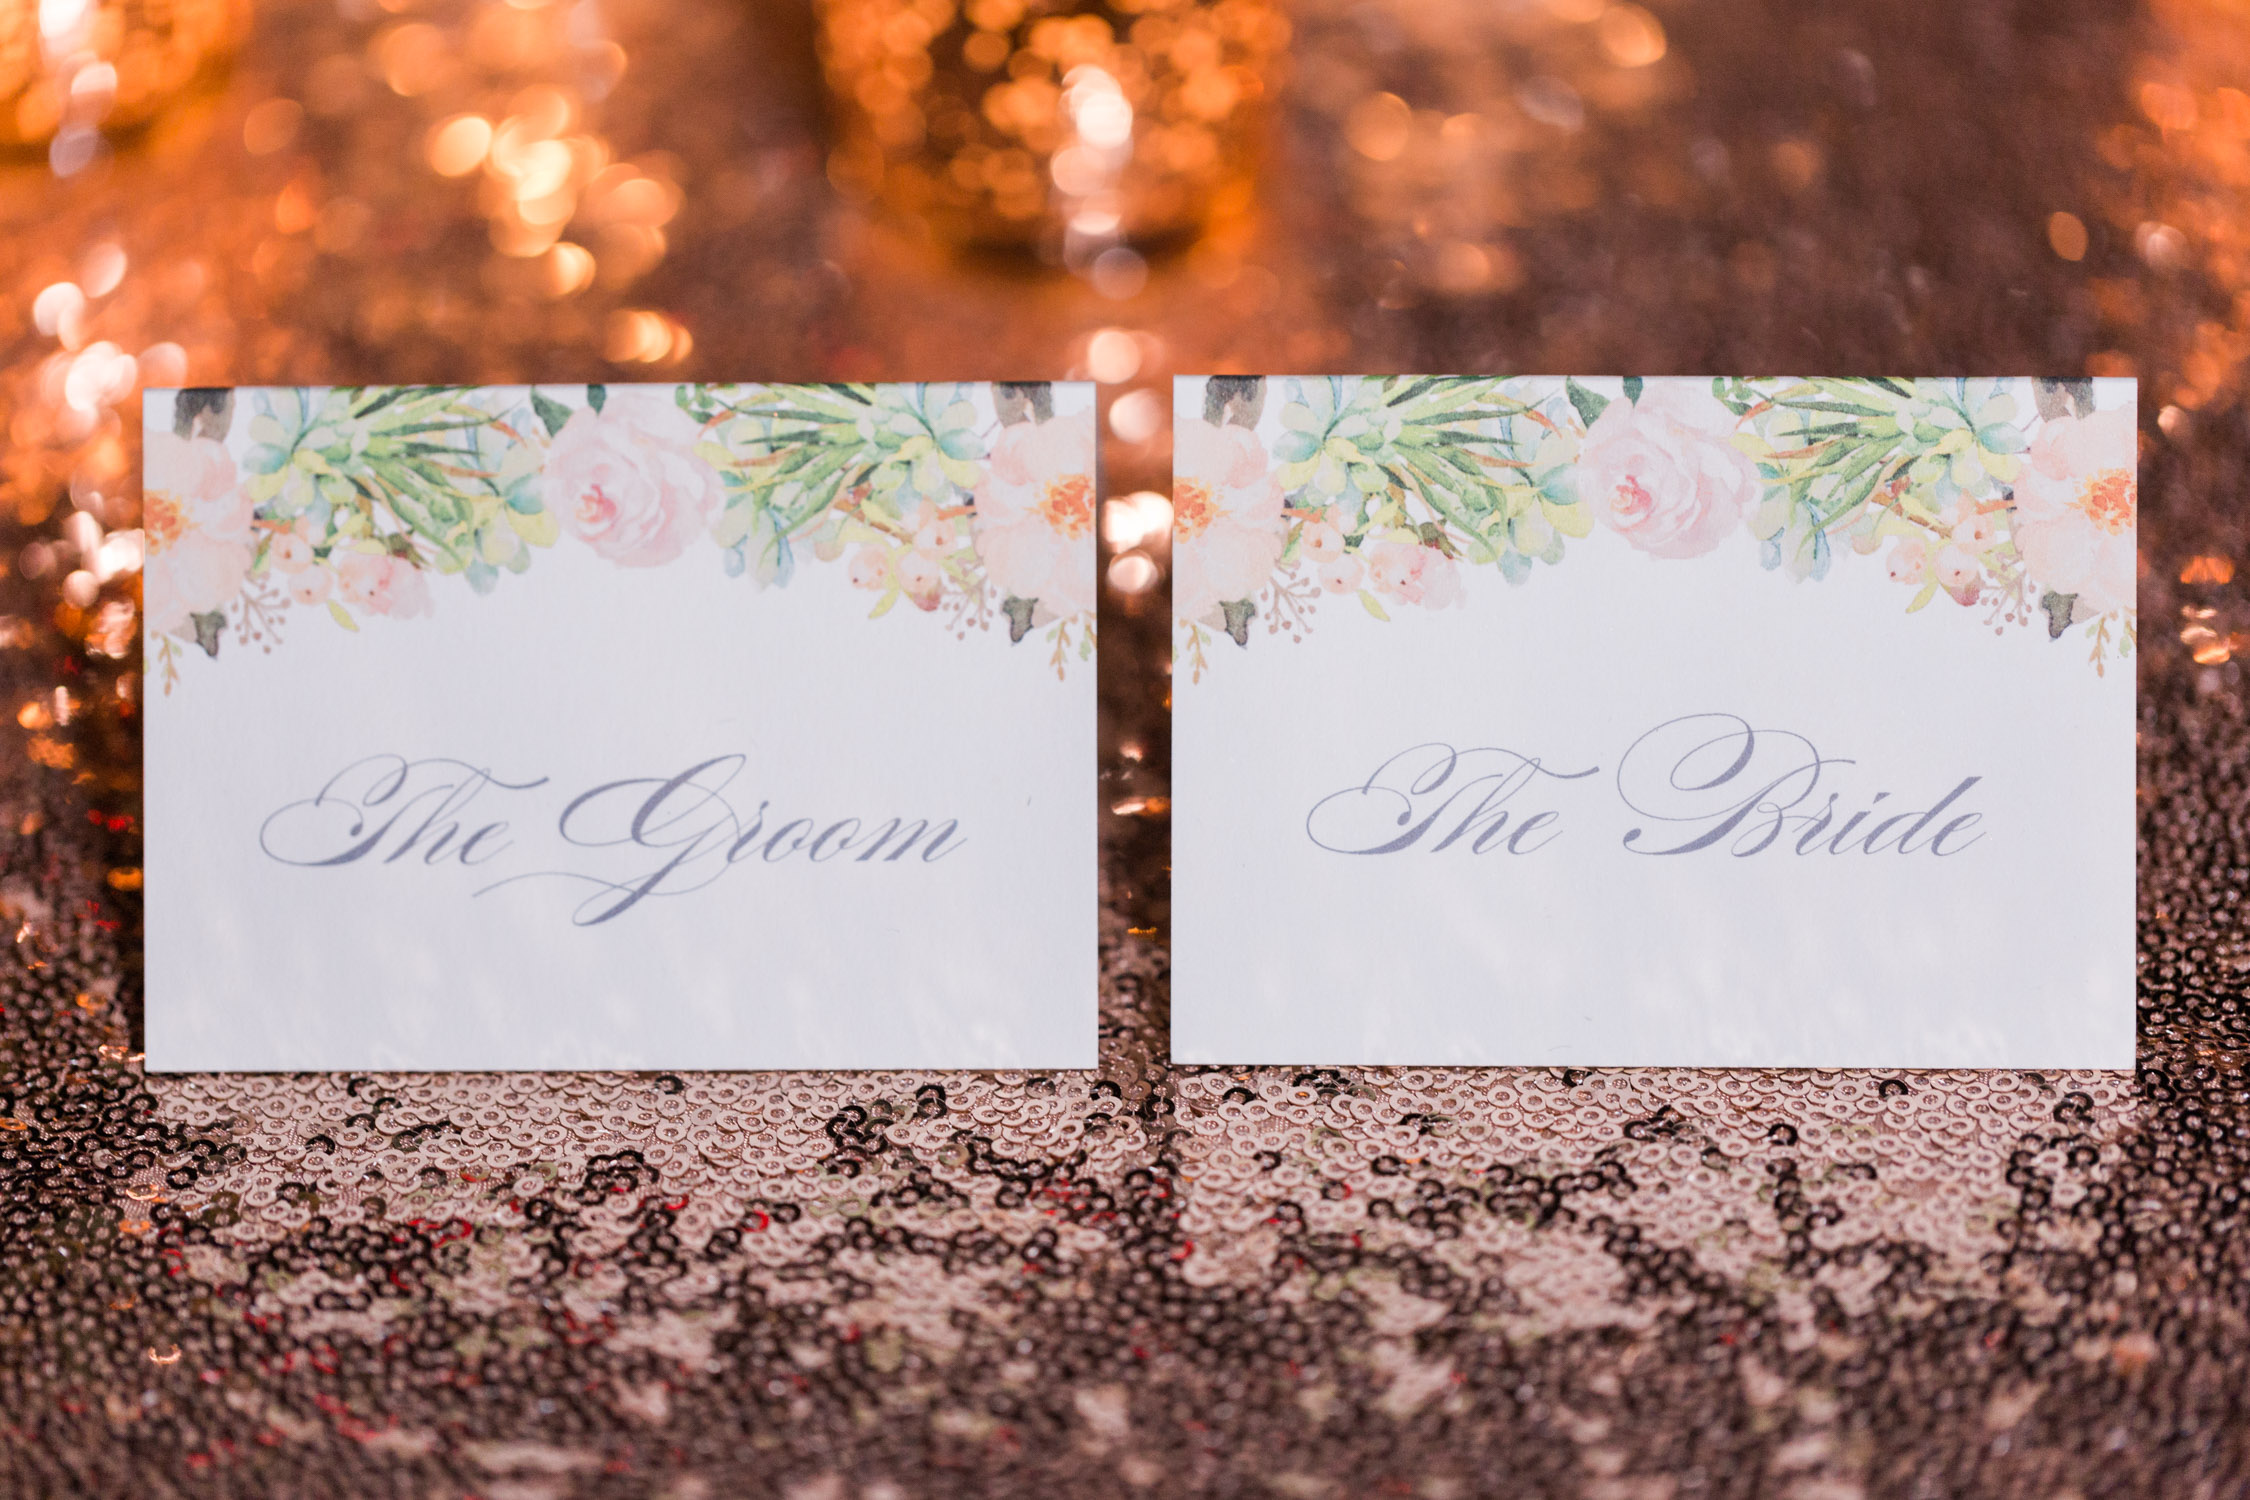 Beautiful place cards designs by Brie Dumais Designs